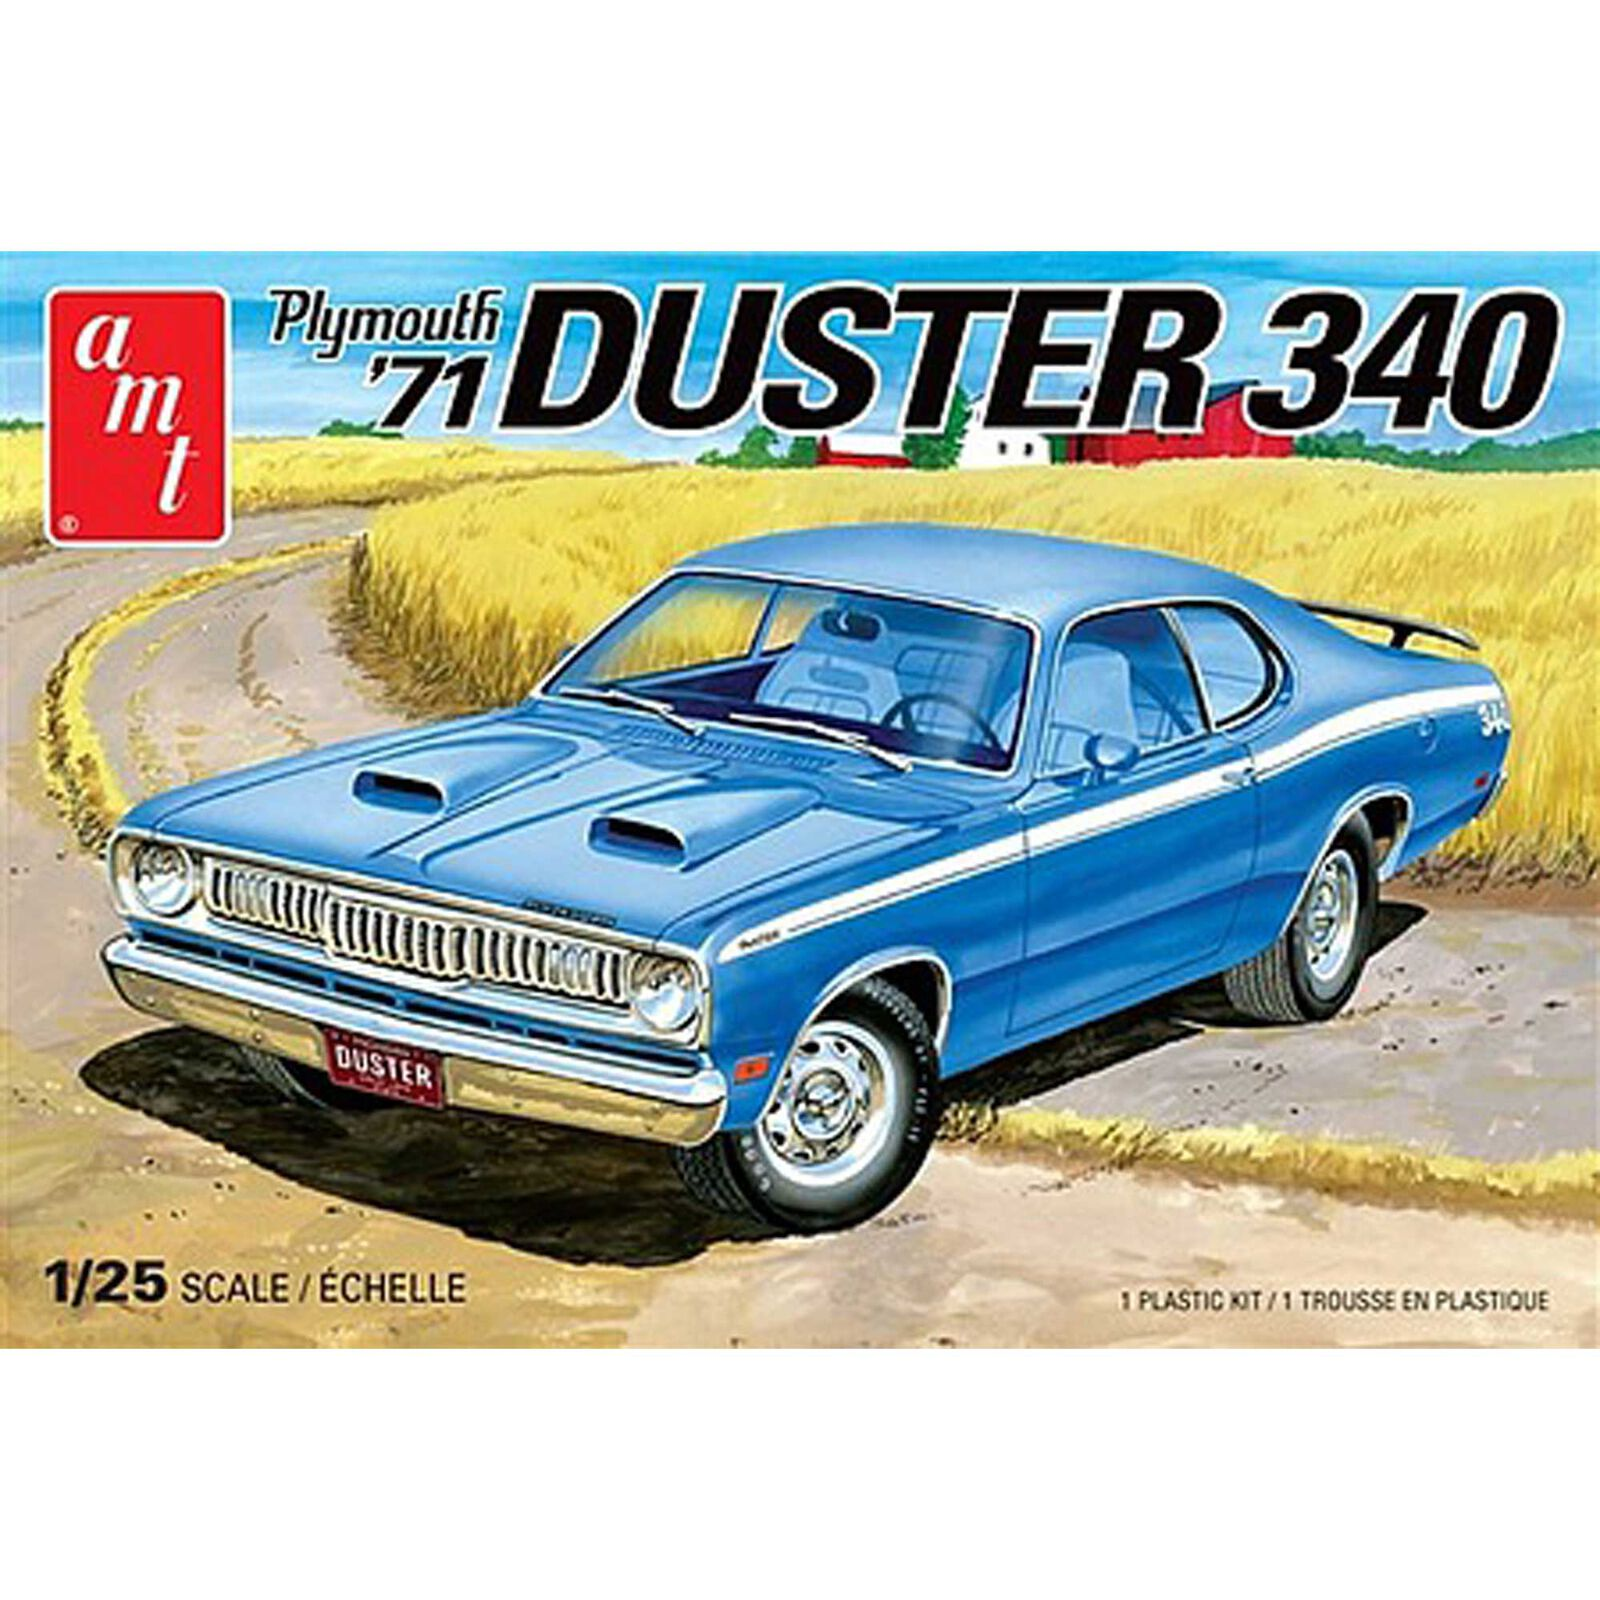 1/25, 1971 Plymouth Duster 340, Model Kit